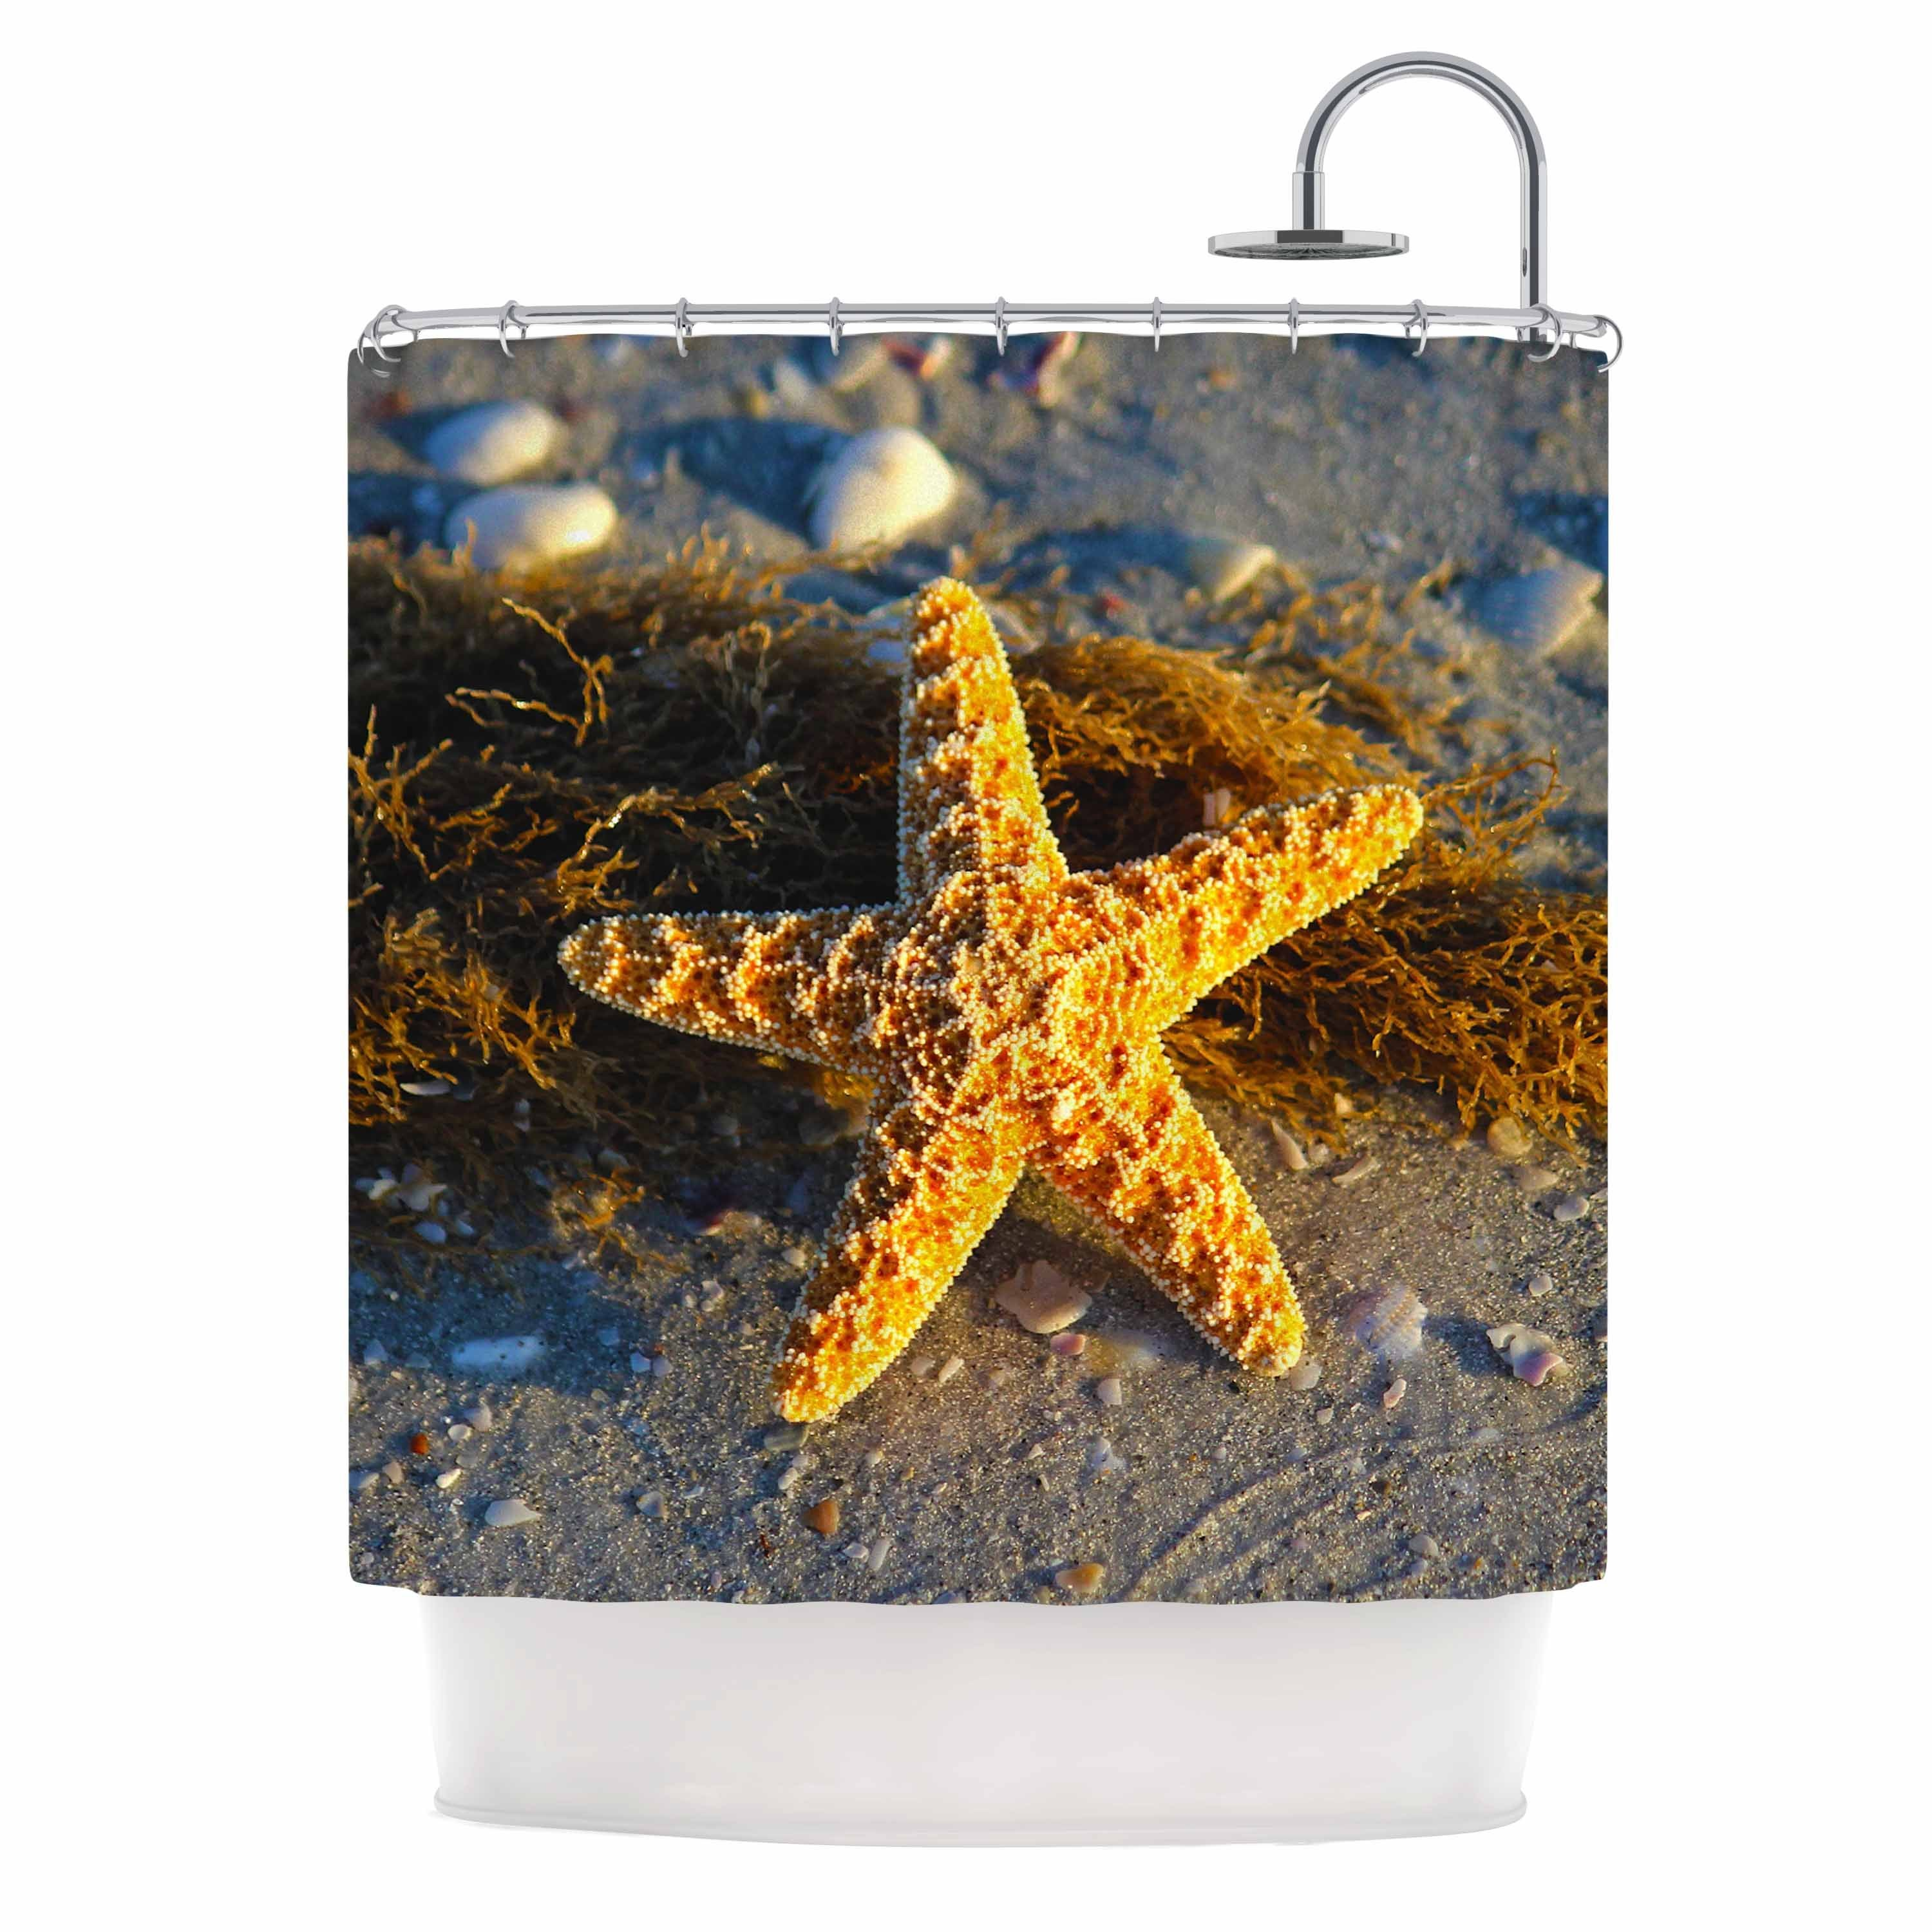 Shop KESS InHouse Philip Brown Starfish Coral Gold Shower Curtain 69x70